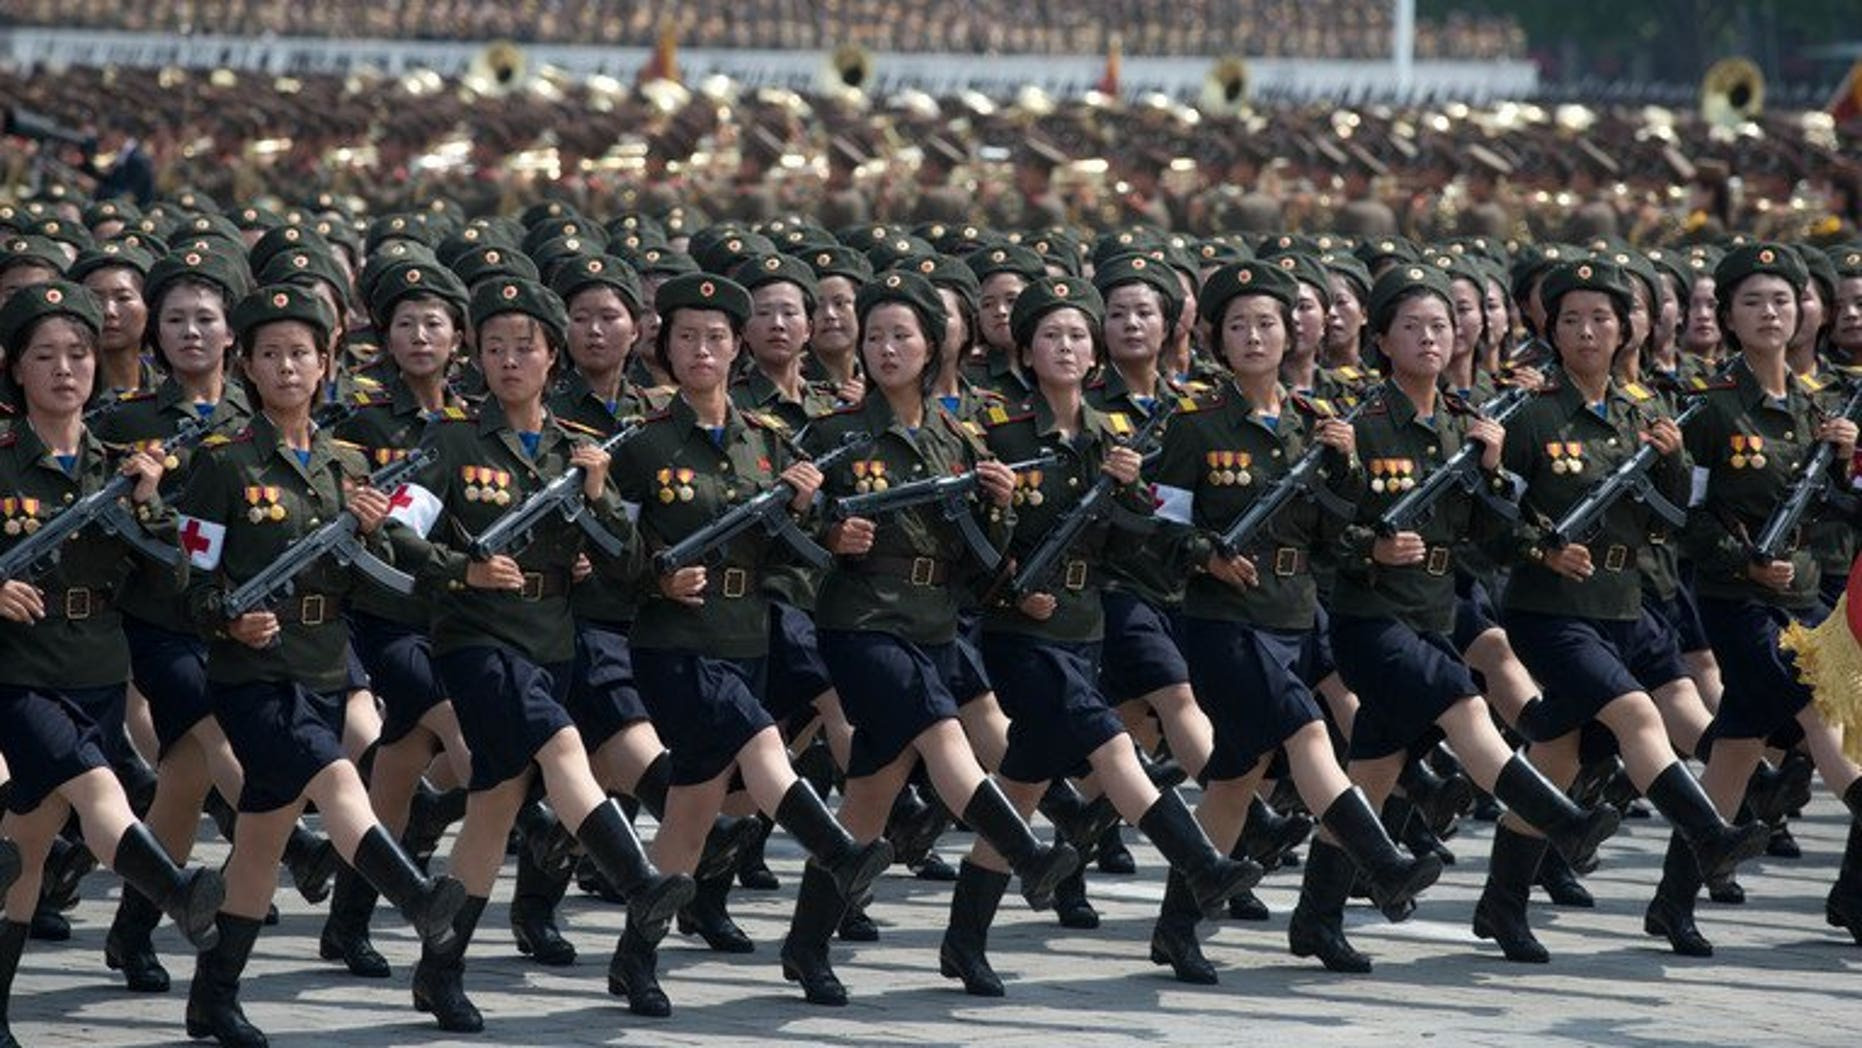 North Korean soldiers march during a military parade in Pyongyang on July 27, 2013. A second mass parade was held Monday.